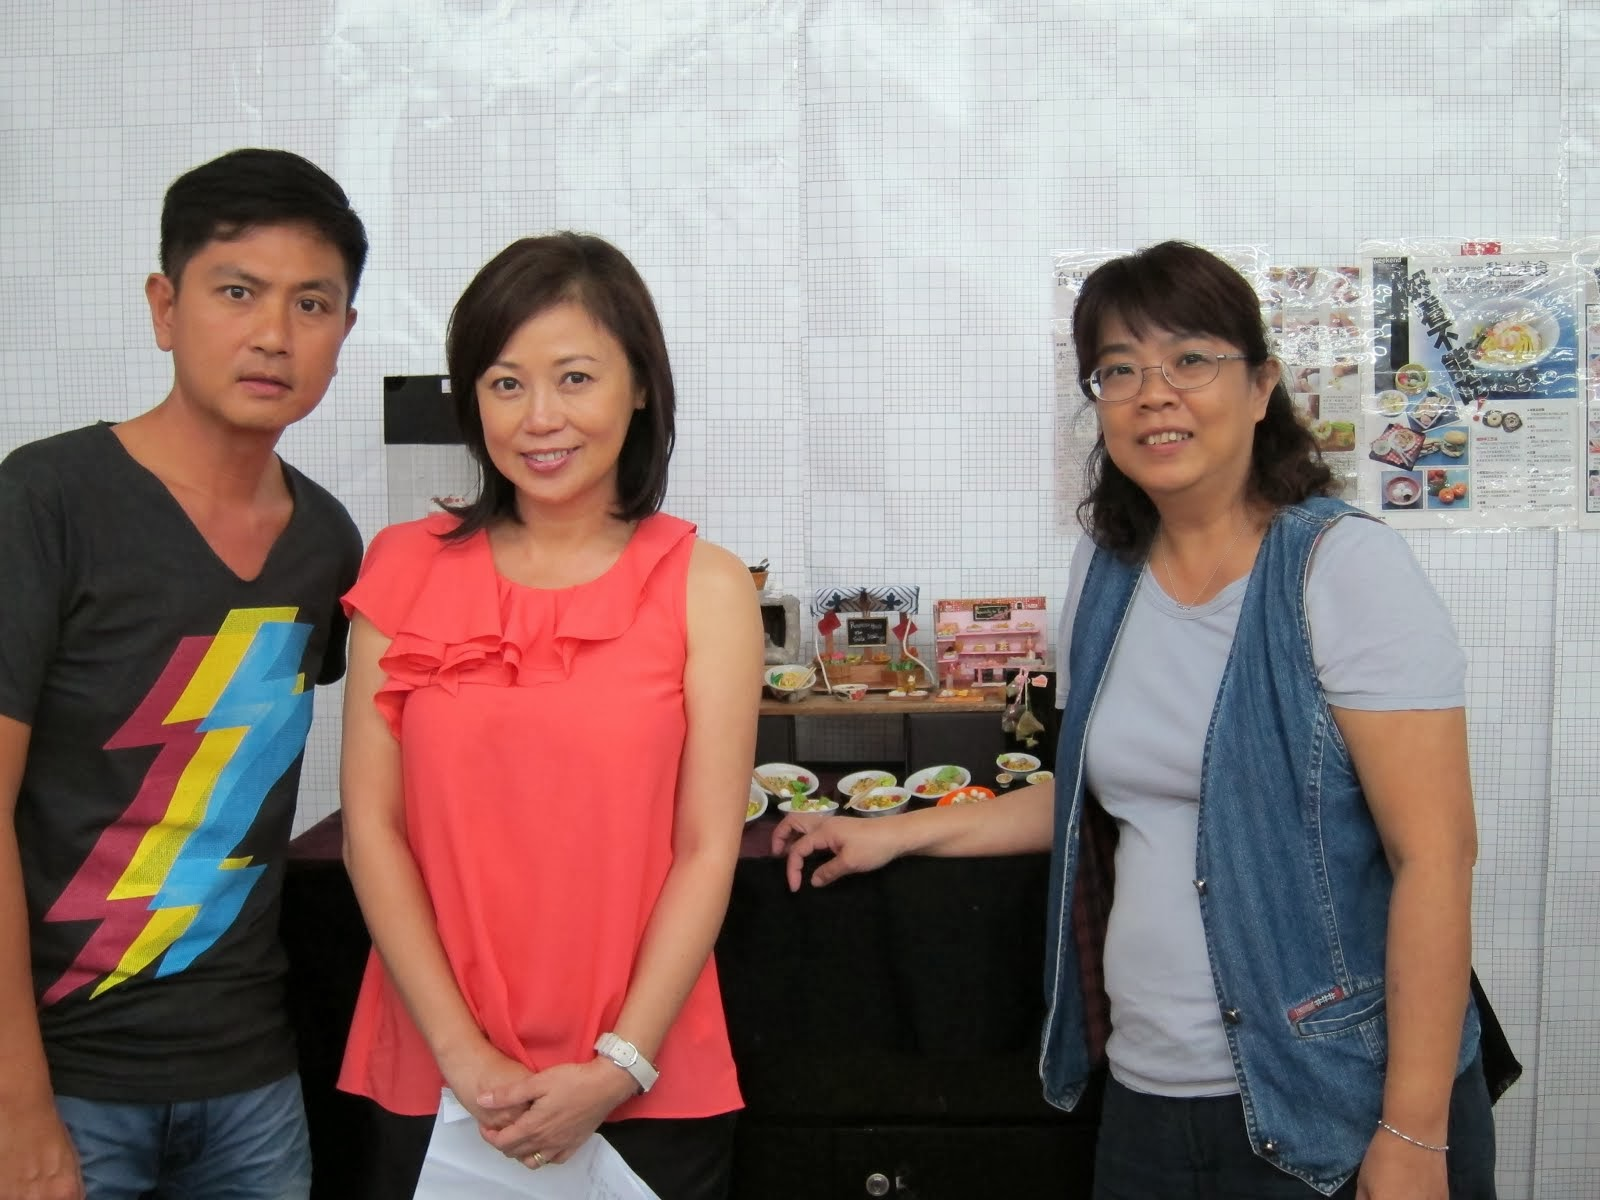 MediaCrop Actress Xiang Yun & actor Chew Chor Meng at My Miniatureworkshop